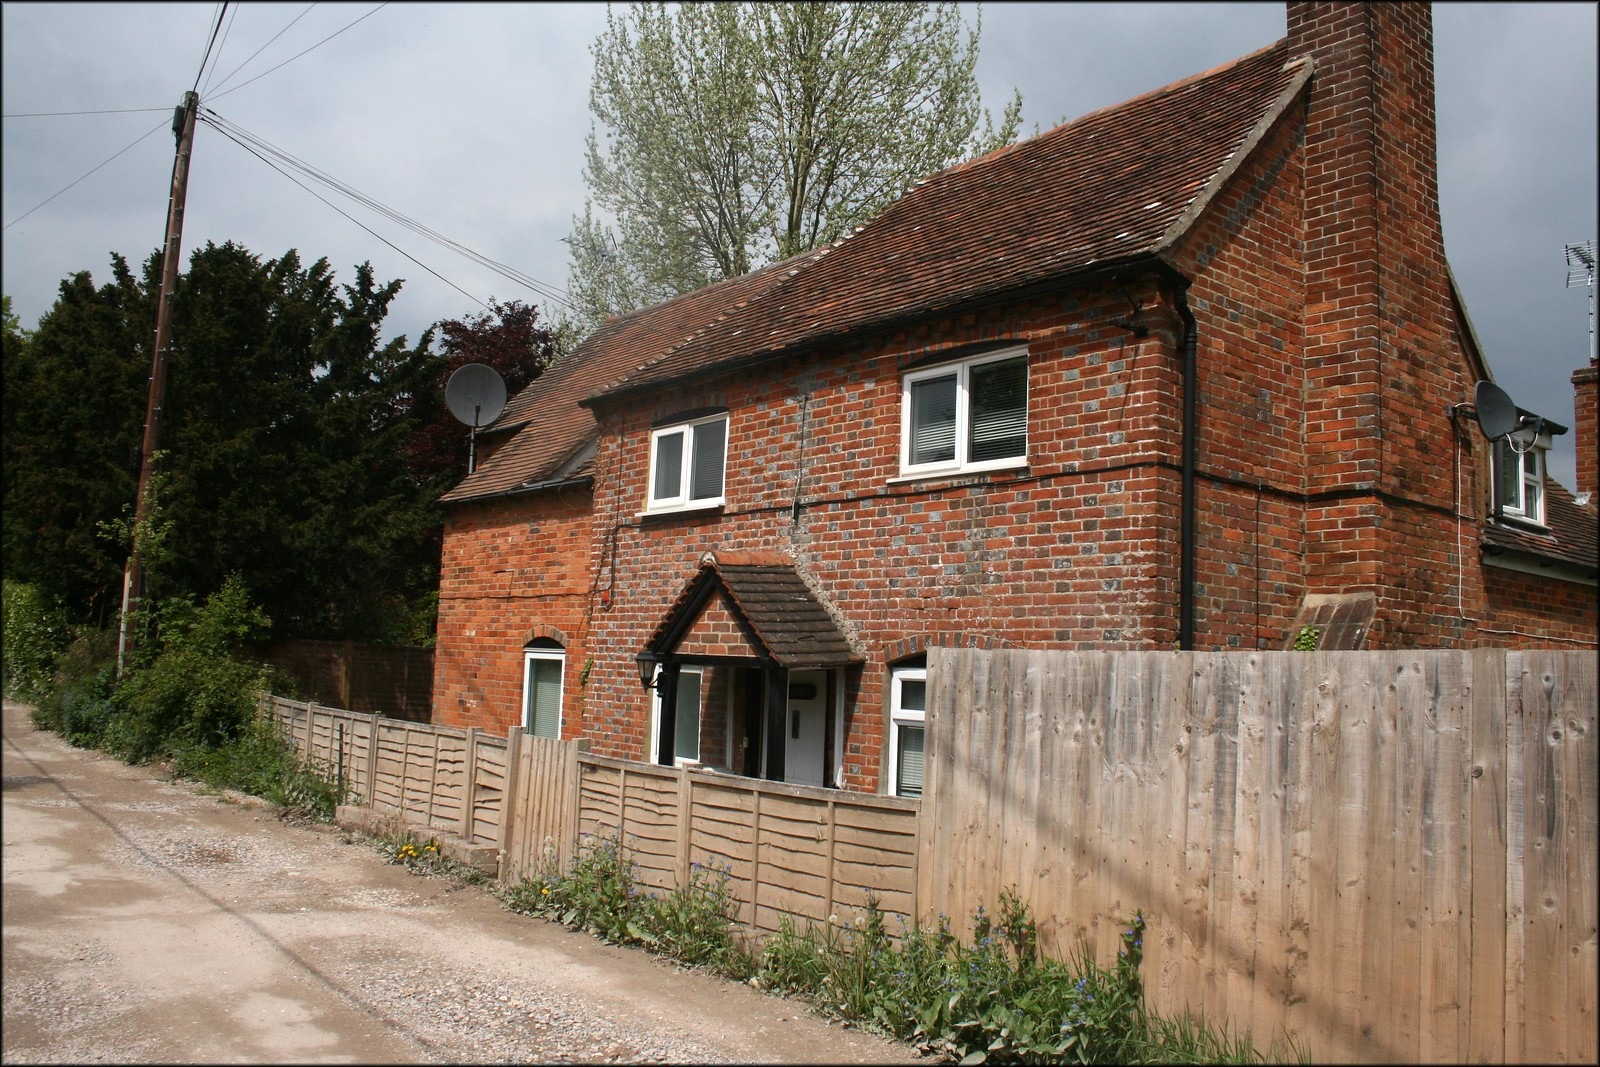 Cottage near Aldermaston